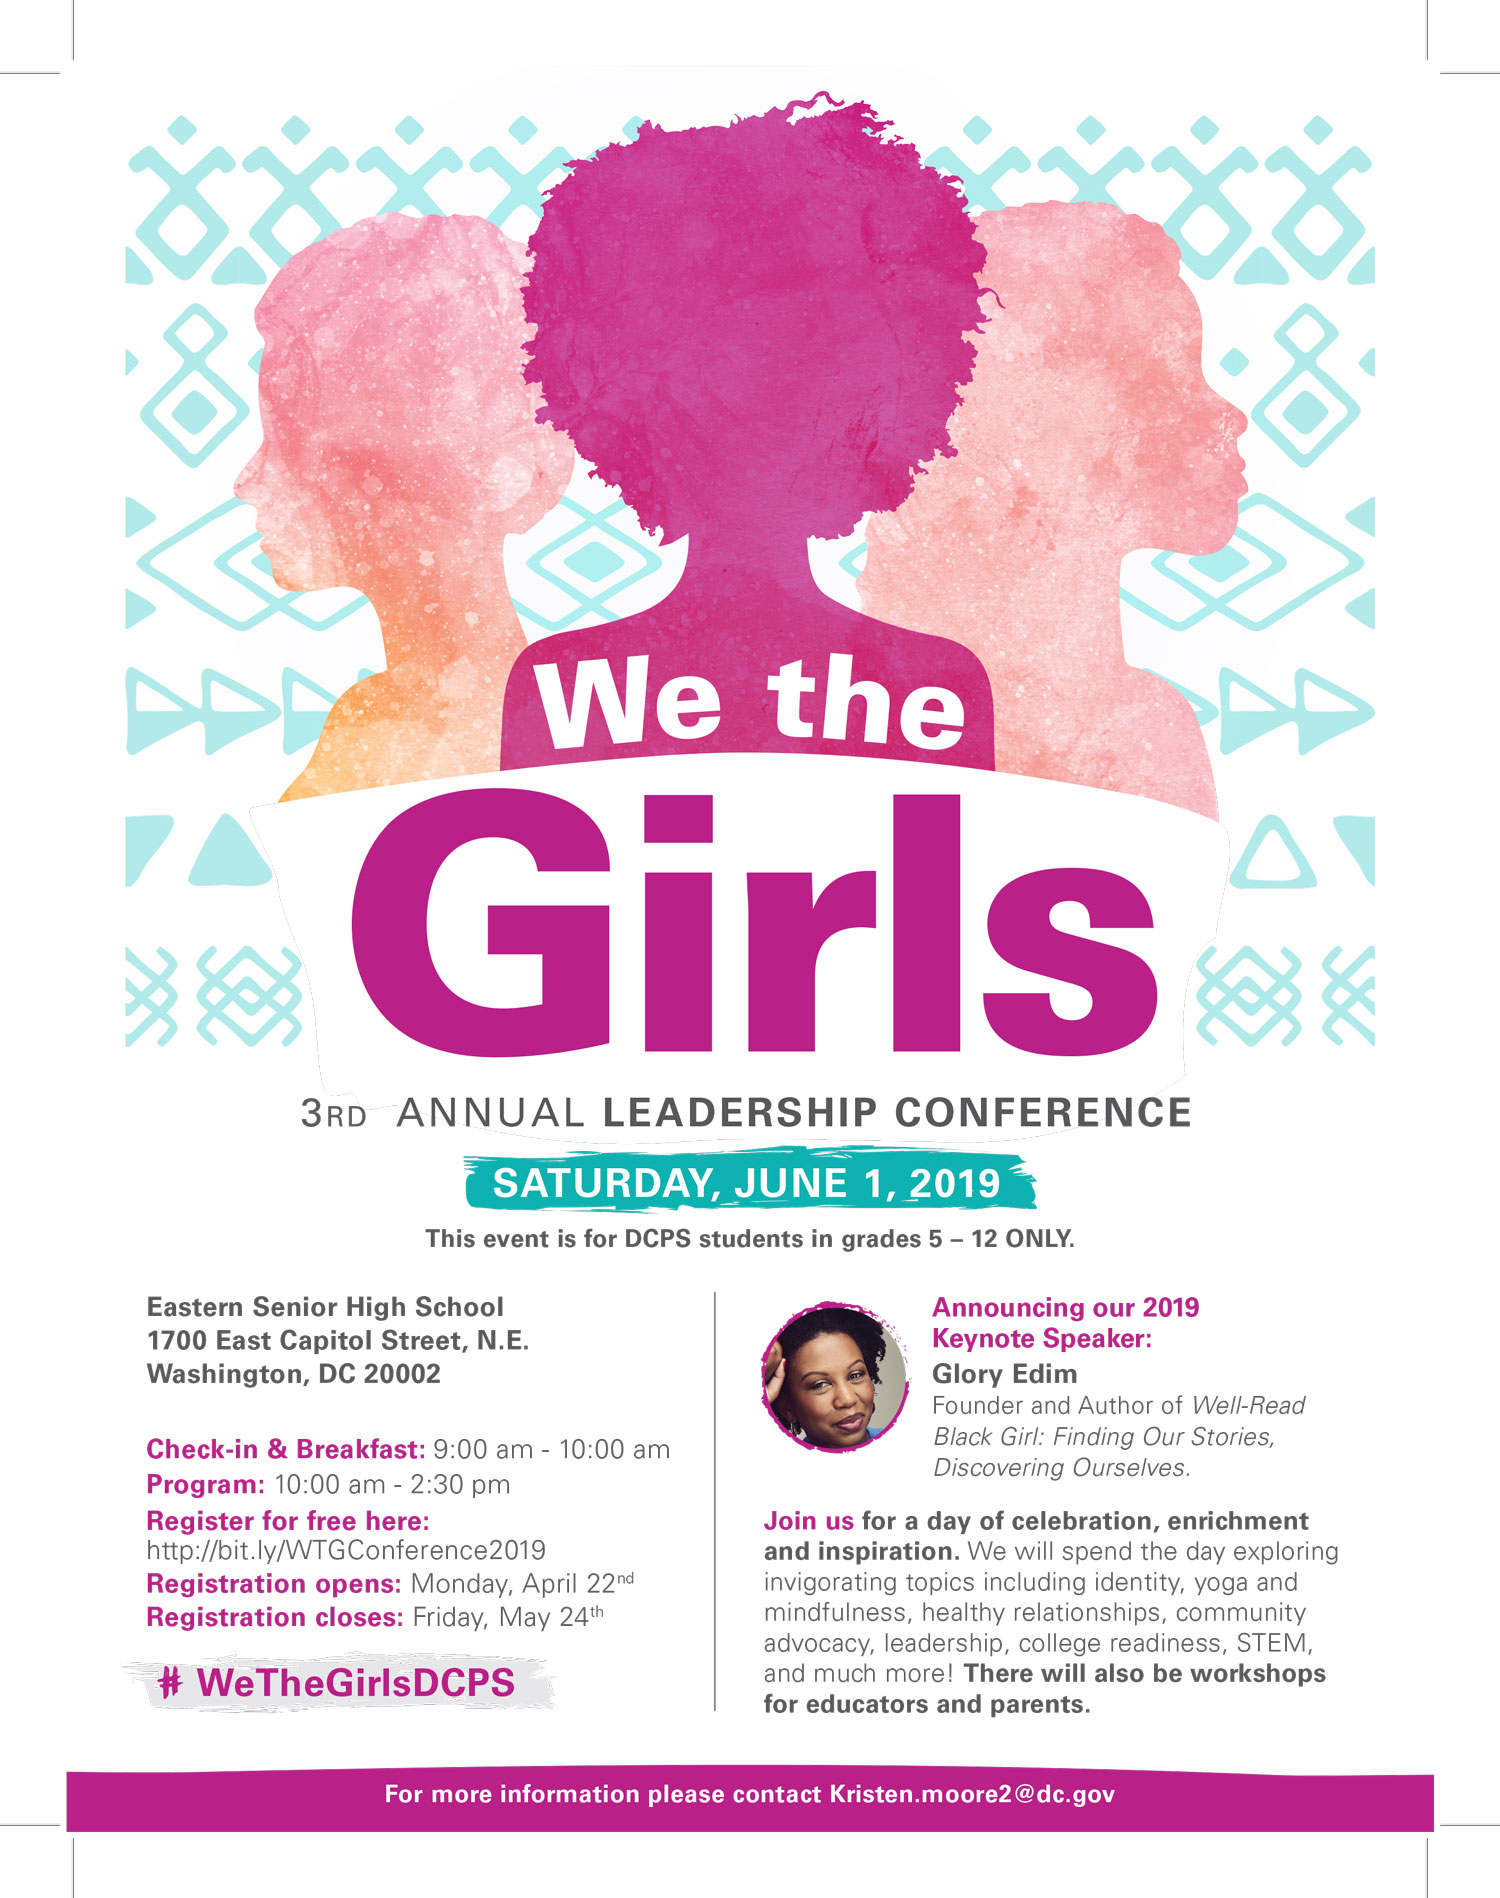 We The Girls 3rd Annual Leadership Conference